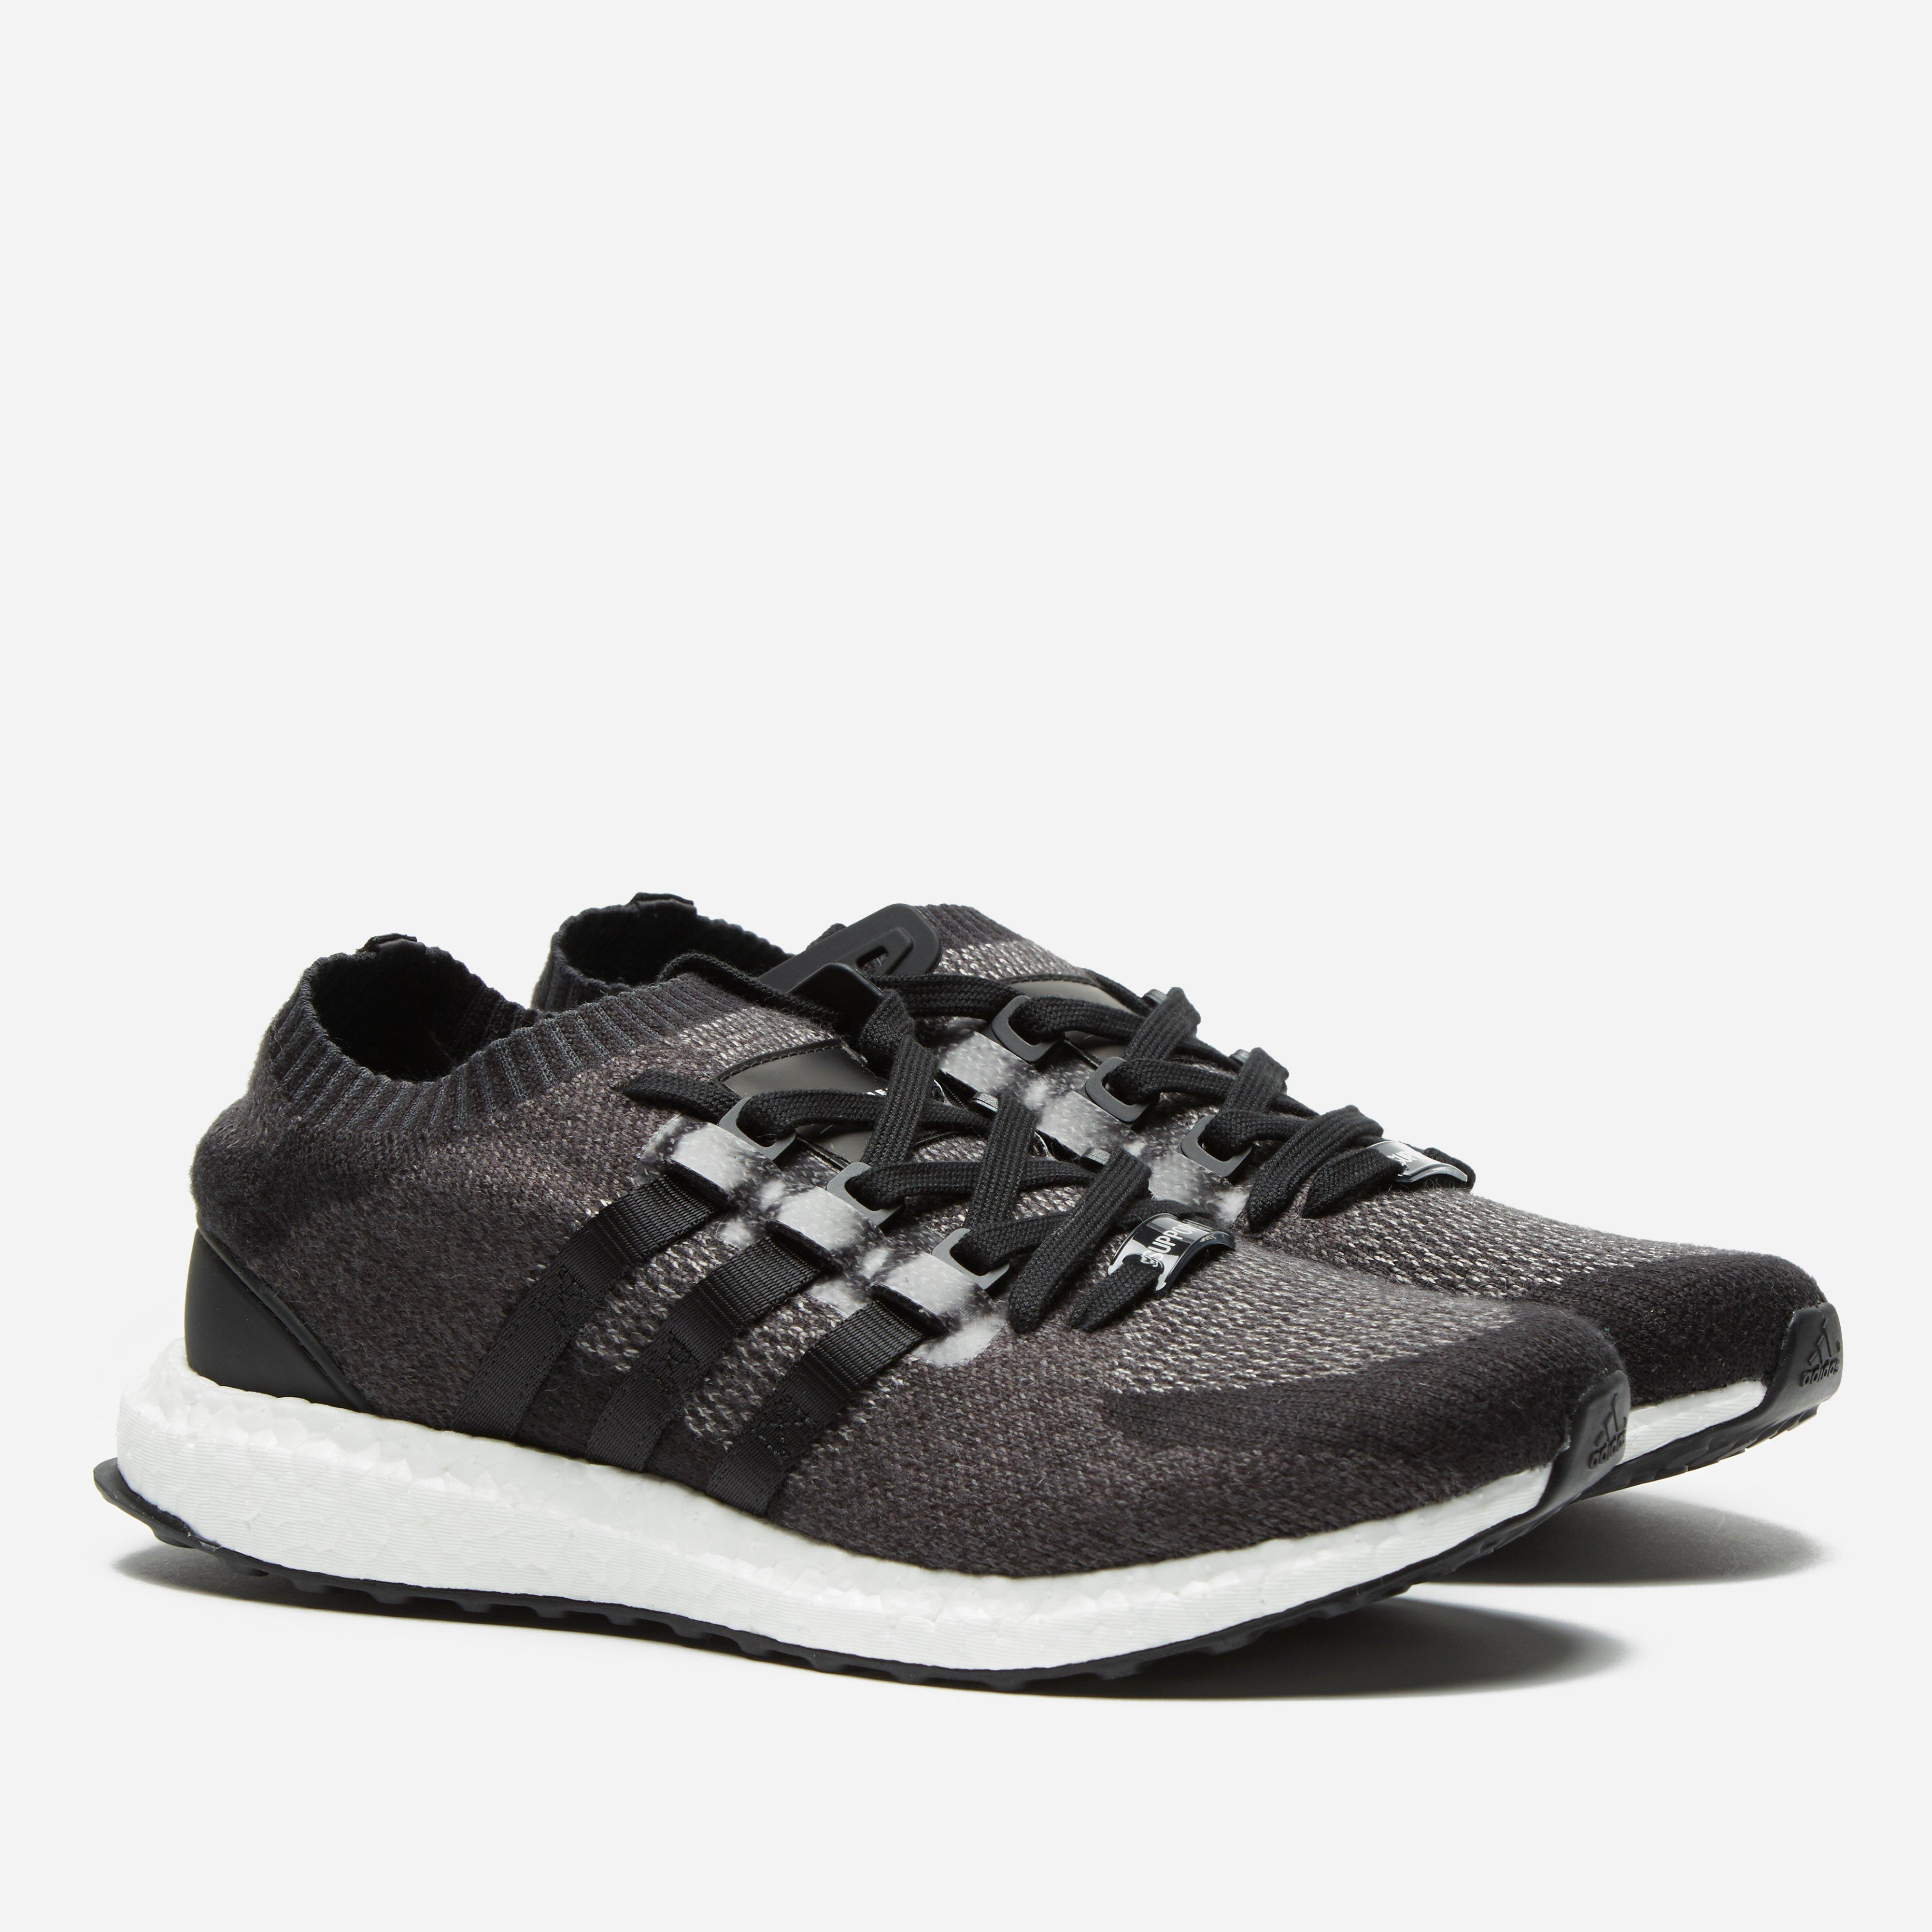 adidas Originals EQT Support Ultra PK